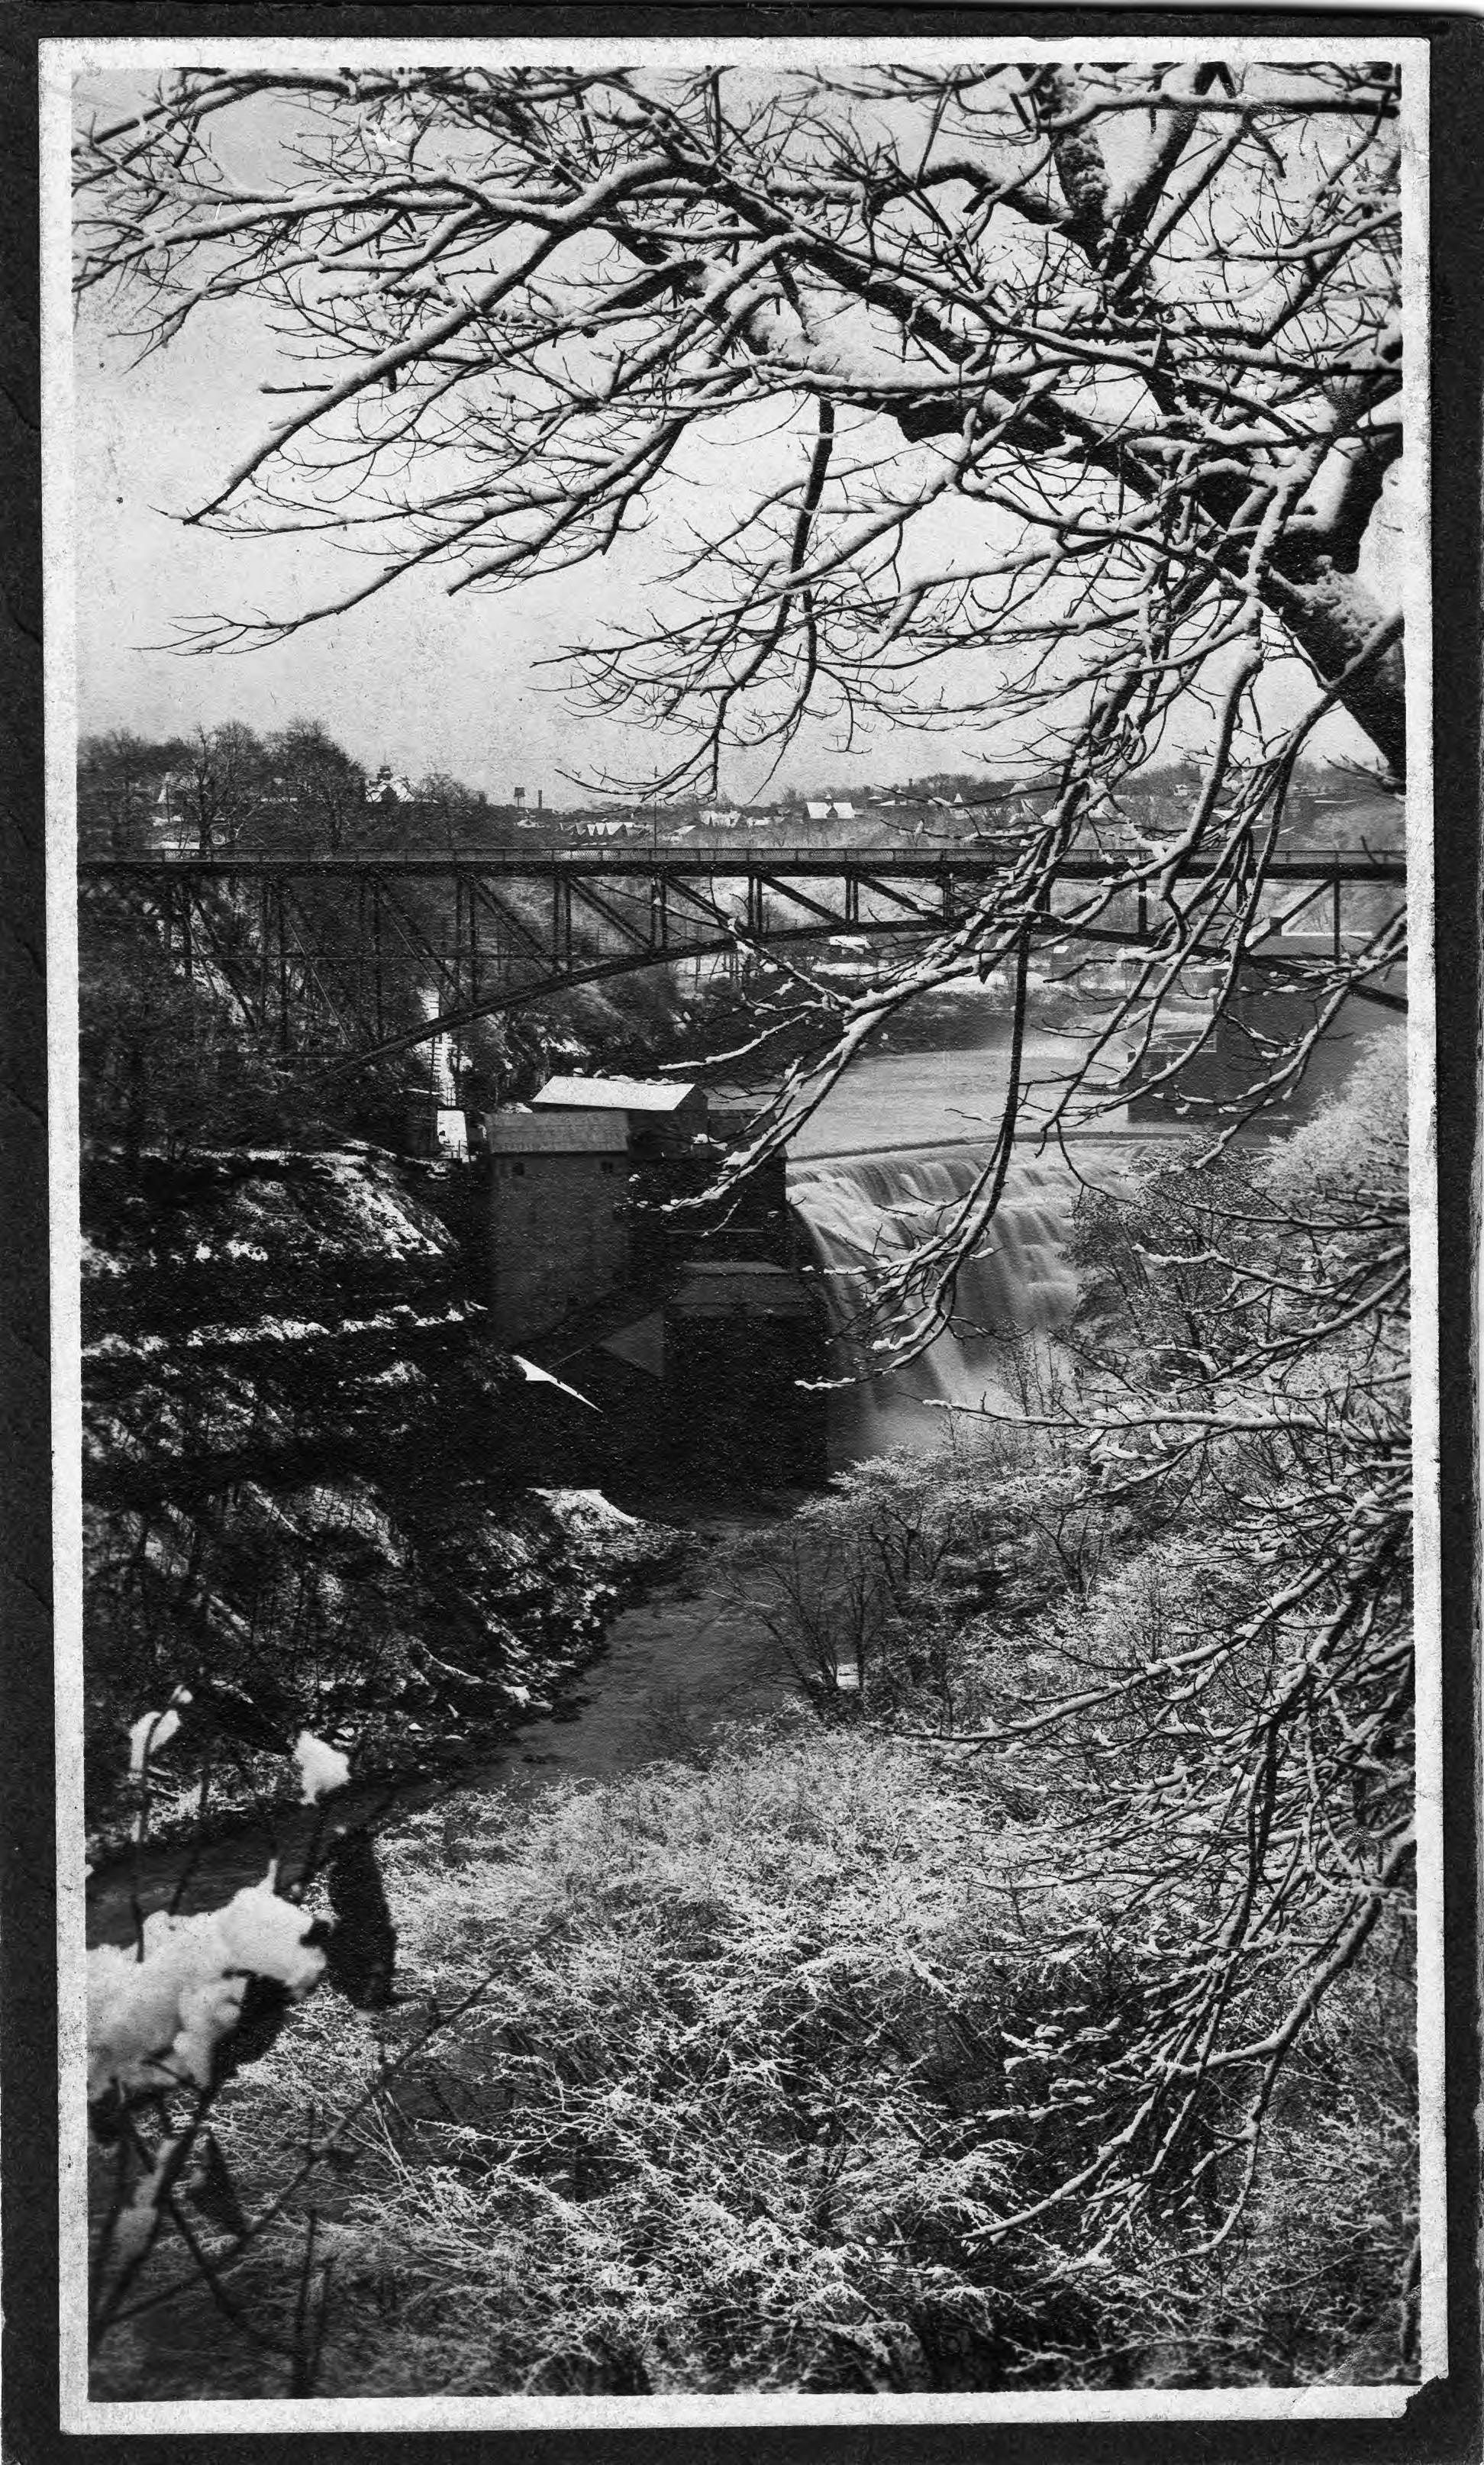 <table class=&quot;lightbox&quot;><tr><td colspan=2 class=&quot;lightbox-title&quot;>Watermill Along a River</td></tr><tr><td colspan=2 class=&quot;lightbox-caption&quot;>Photographs of watermills are rare because they were largely outmoded by the time photography became common. This undated photograph by Roman Kwasniewski shows a mill, bridge, and waterfall in winter.</td></tr><tr><td colspan=2 class=&quot;lightbox-spacer&quot;></td></tr><tr class=&quot;lightbox-detail&quot;><td class=&quot;cell-title&quot;>Source: </td><td class=&quot;cell-value&quot;>From the Roman B. Kwaniewski Photographs Collection, Archives. University of Wisconsin-Milwaukee Libraries. <br /><a href=&quot;https://collections.lib.uwm.edu/digital/collection/mke-polonia/id/33834/rec/1&quot; target=&quot;_blank&quot;>University of Wisconsin-Milwaukee Libraries</a></td></tr><tr class=&quot;filler-row&quot;><td colspan=2>&nbsp;</td></tr></table>